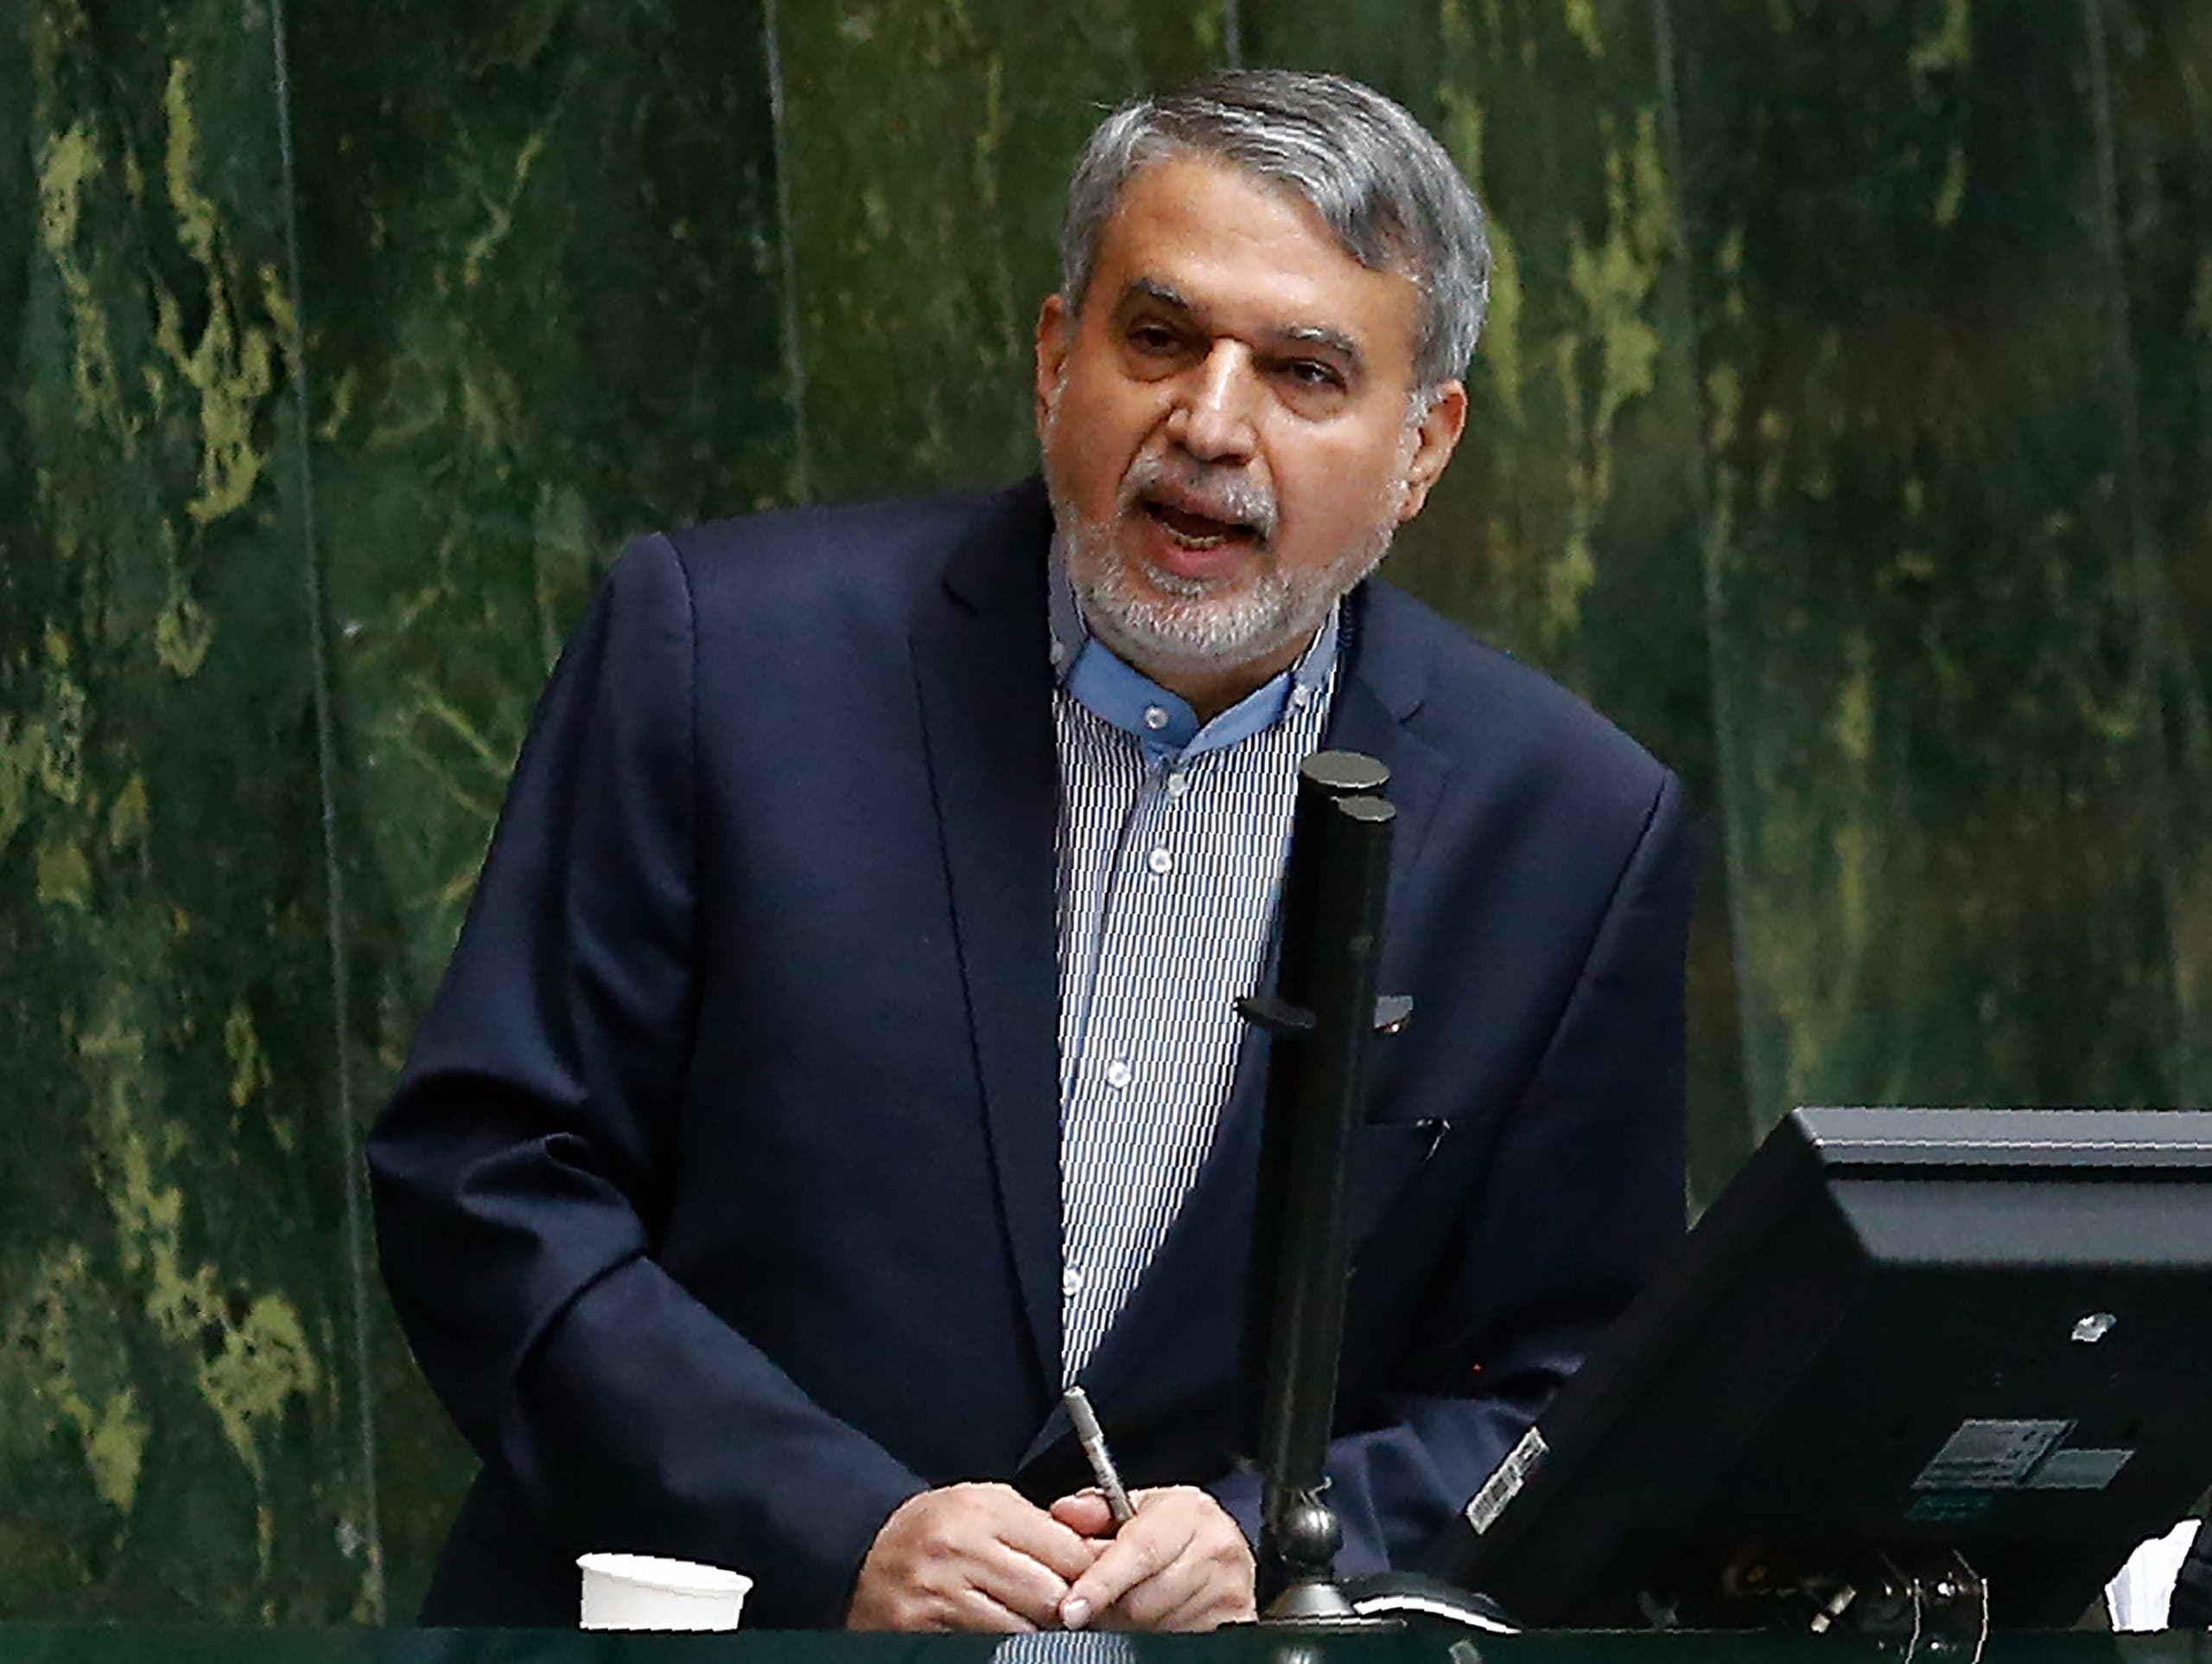 Newly nominated minister of culture Reza Salehi Amiri delivers a speech to the parliament in Tehran on November 1, 2016